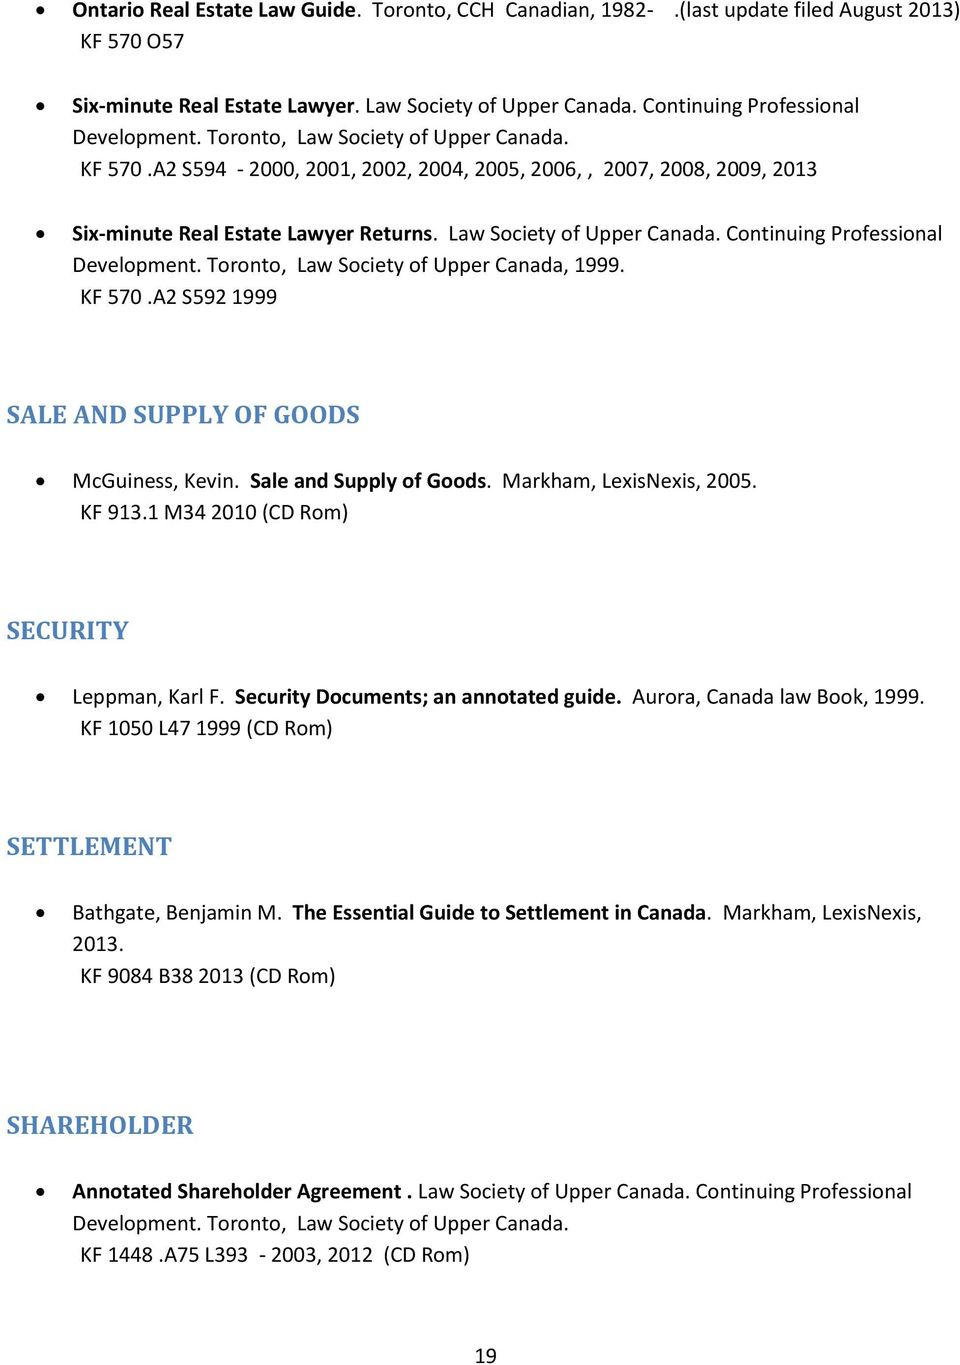 Toronto, Law Society of Upper Canada, 1999. KF 570.A2 S592 1999 SALE AND SUPPLY OF GOODS McGuiness, Kevin. Sale and Supply of Goods. Markham, LexisNexis, 2005. KF 913.